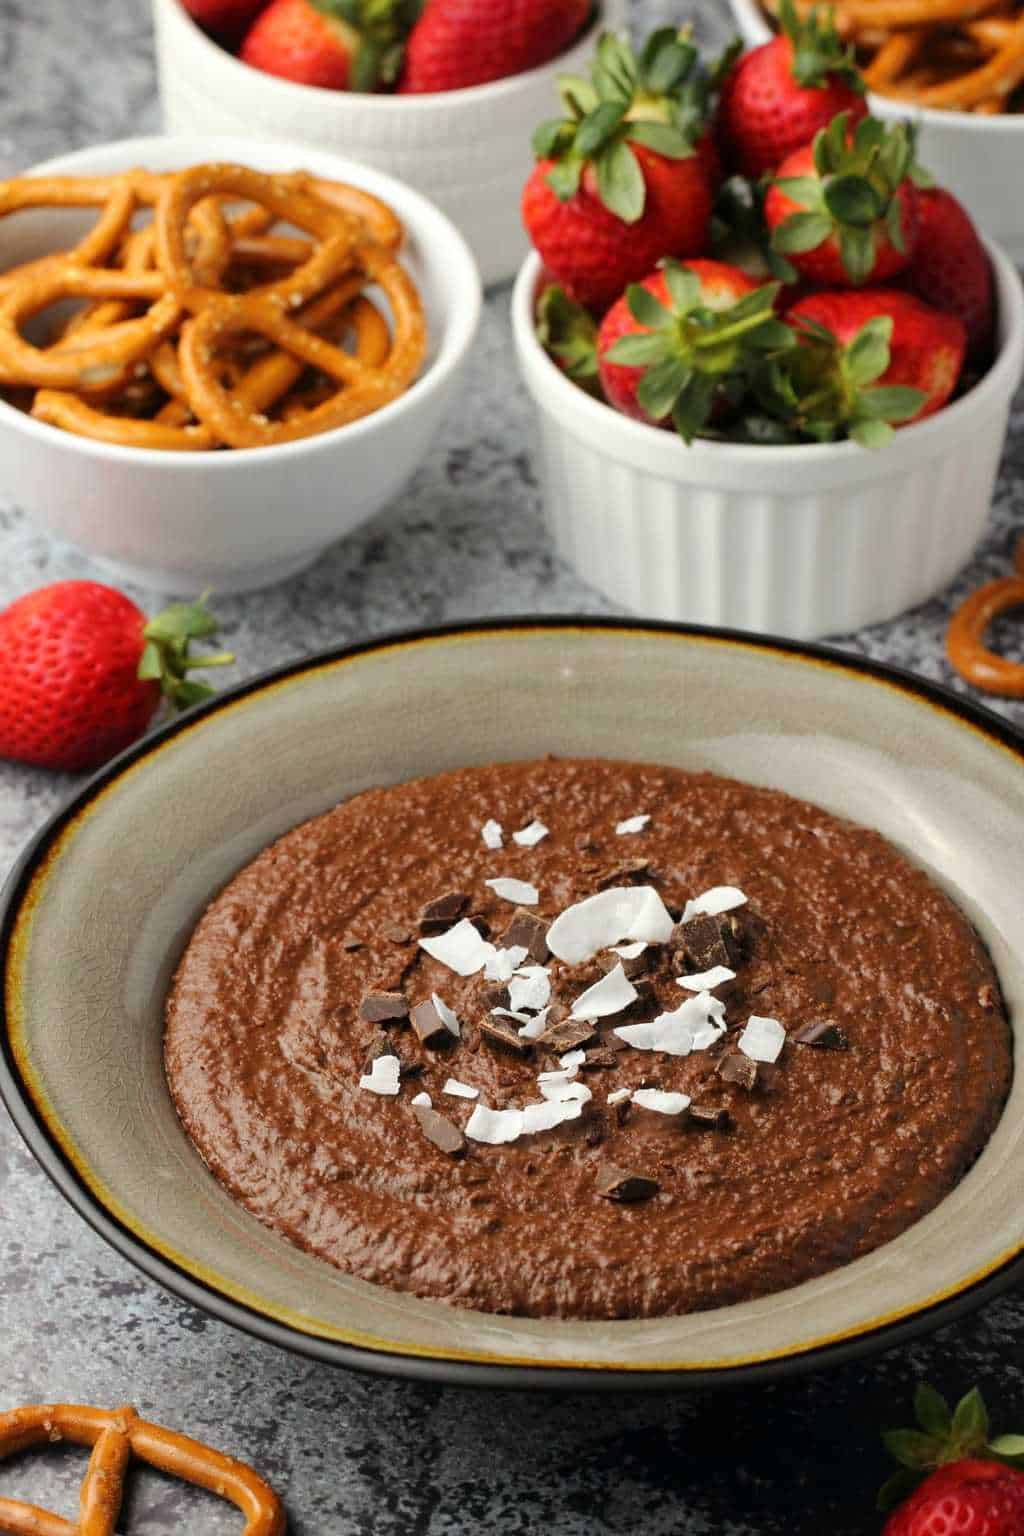 Chocolate Dessert Hummus topped with chocolate pieces and coconut flakes in a stone bowl.